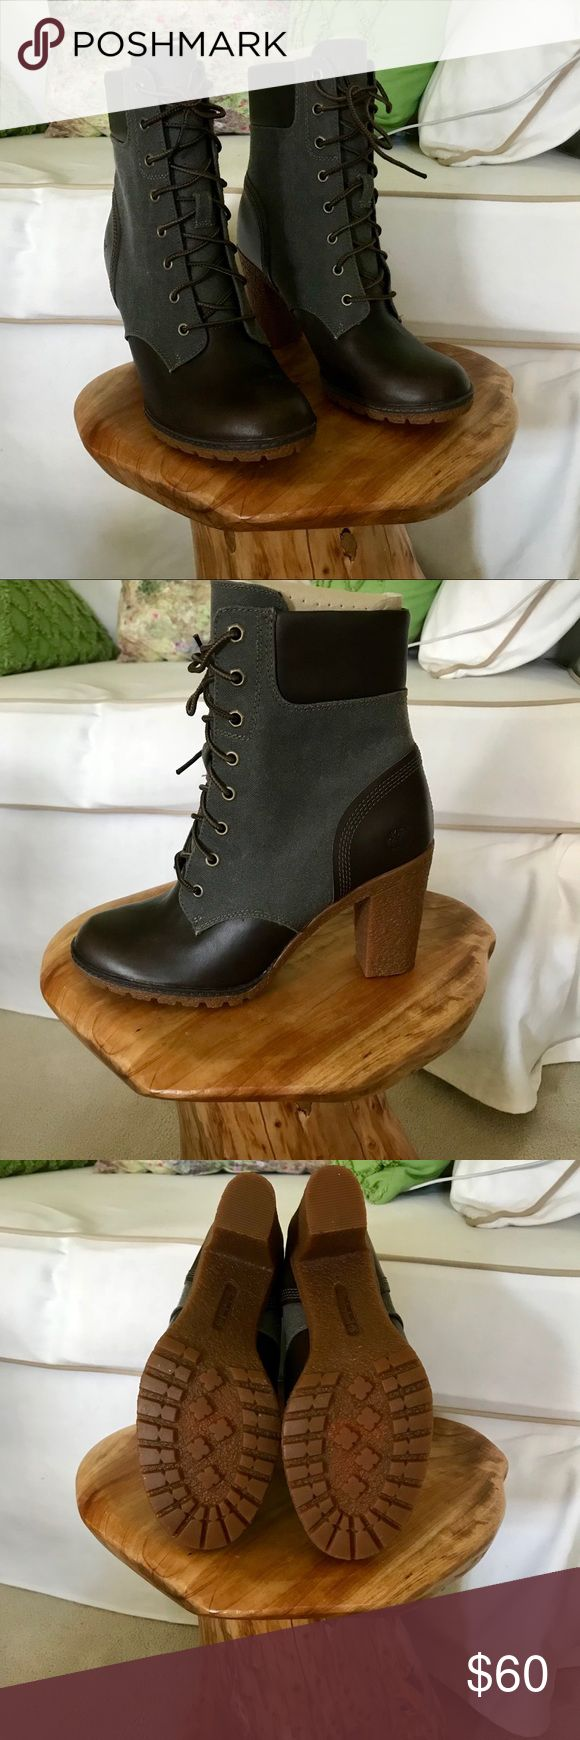 Timberland Earthkeepers Glancy Lace Up Boots, 8 Lace up boots with heeled rubber sole by timberland. Great for winter/rainy weather. Gray/ burgundy color. Women's size 8. New Timberland Shoes Ankle Boots & Booties